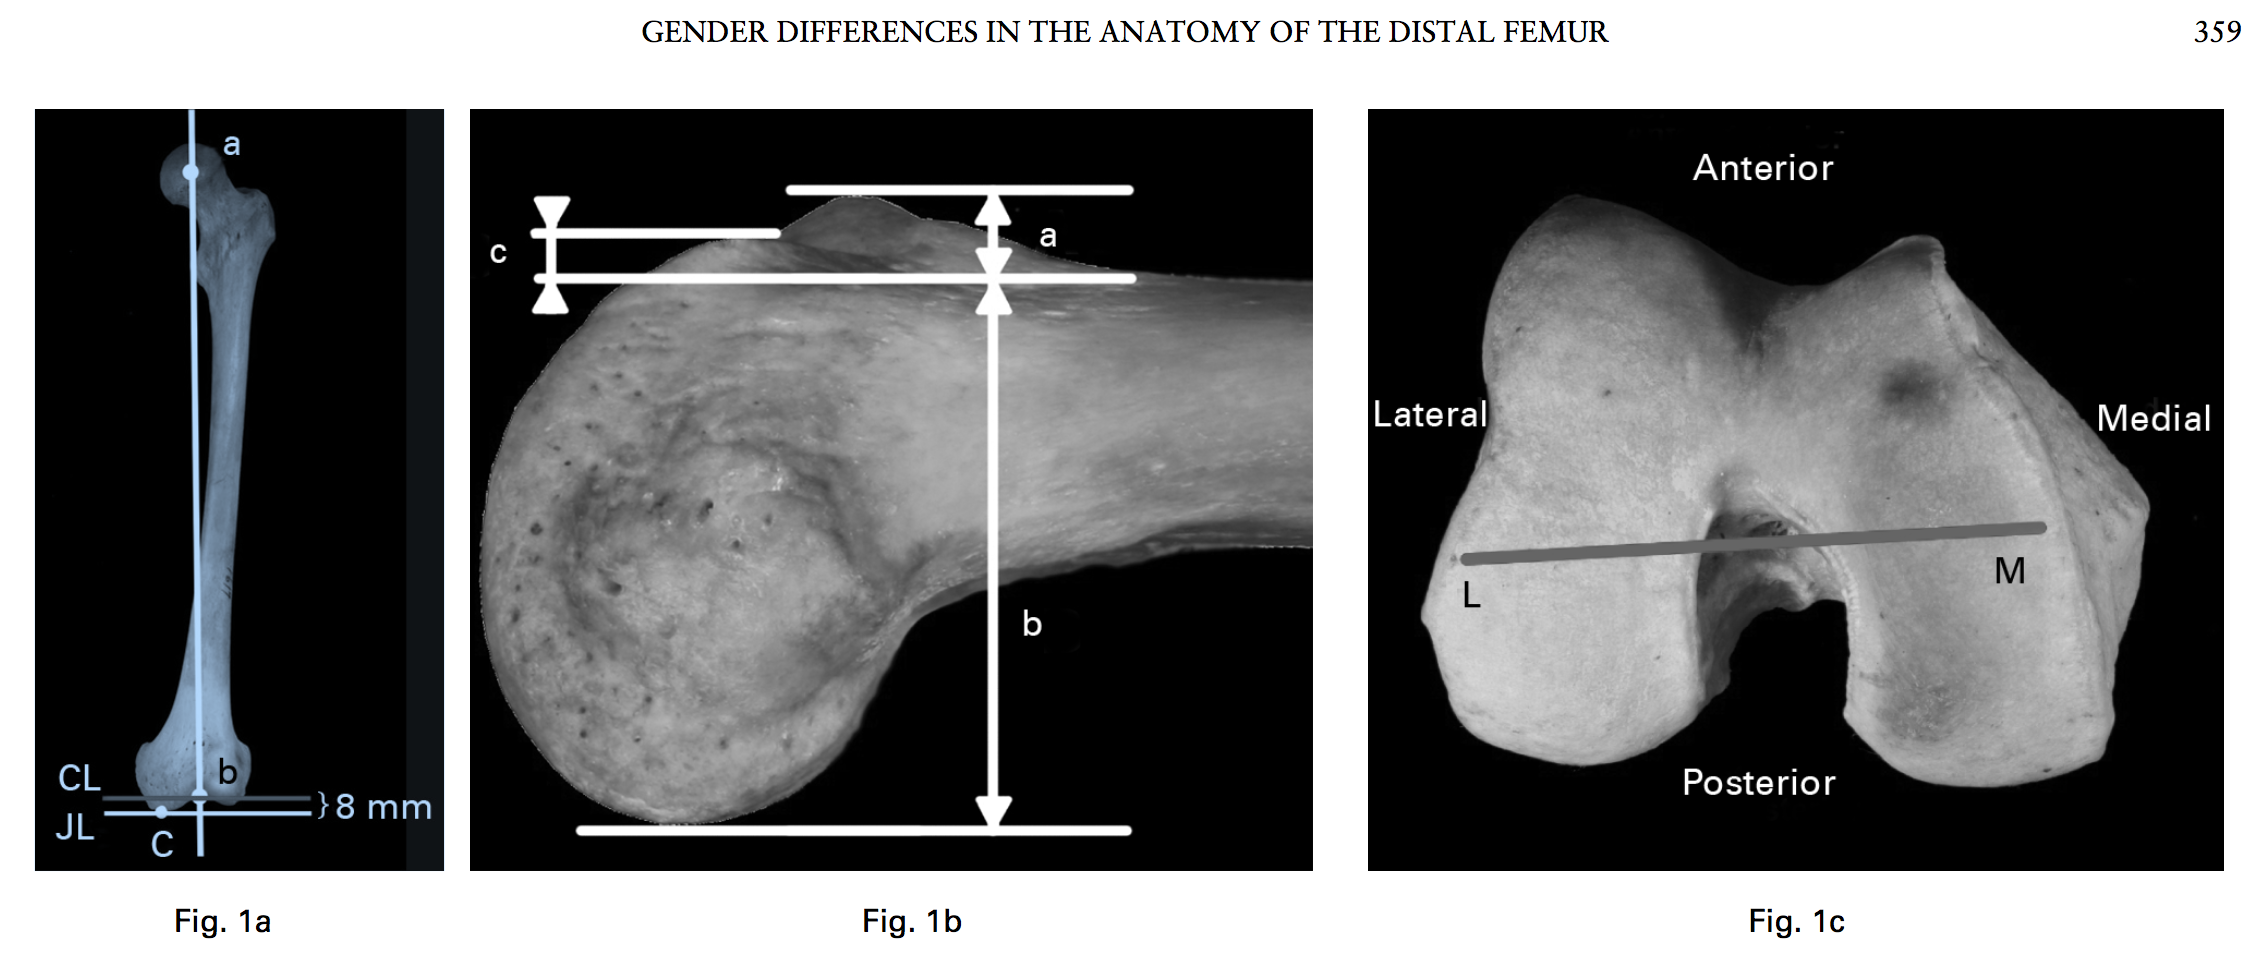 gender-differences-in-the-anatomy-of-the-distal-femur ...